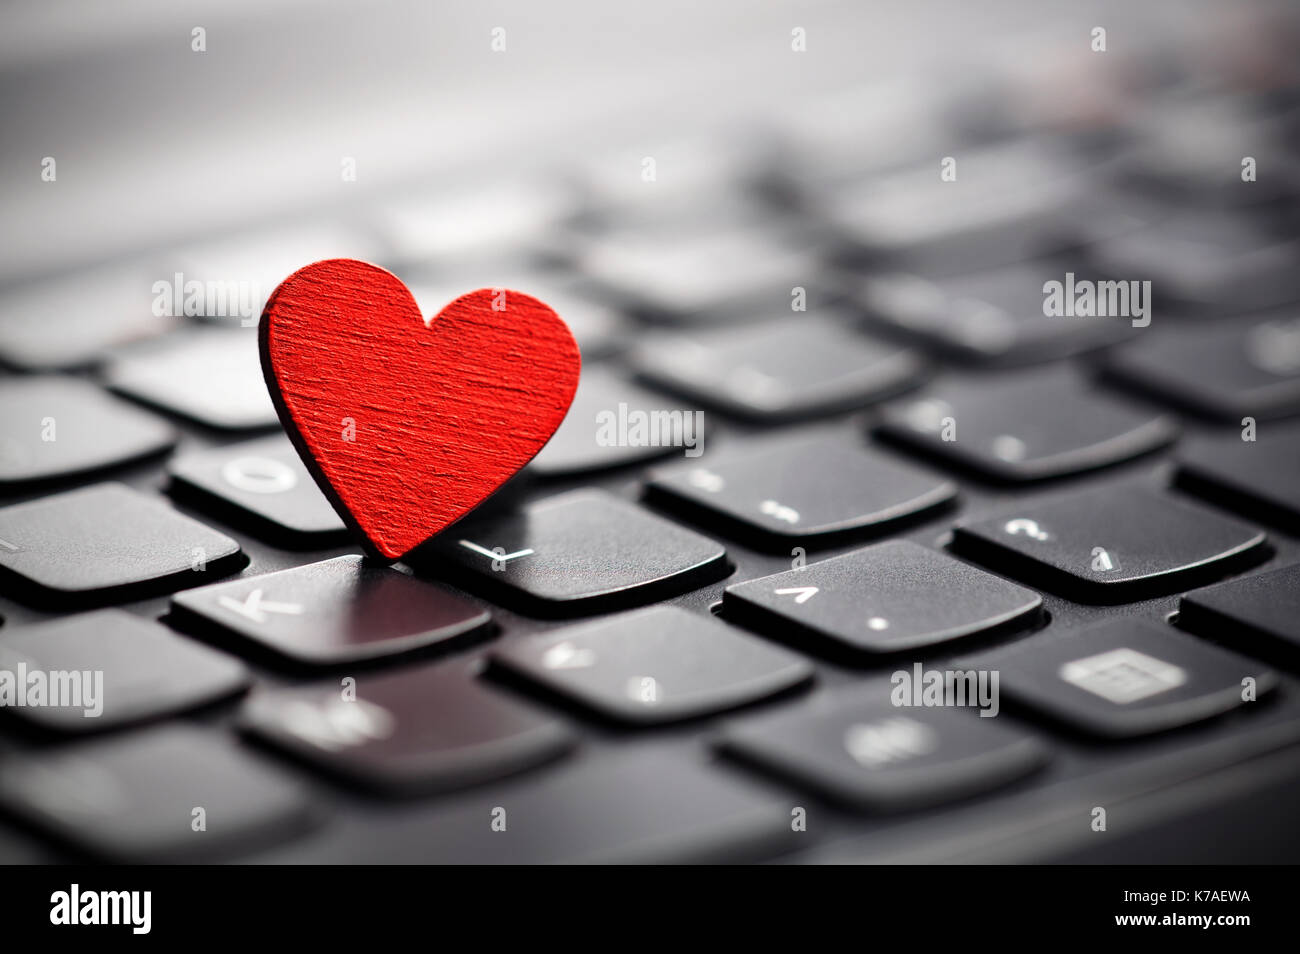 Heart symbol on computer keyboard stock photos heart symbol on small red heart on keyboard internet dating concept stock image biocorpaavc